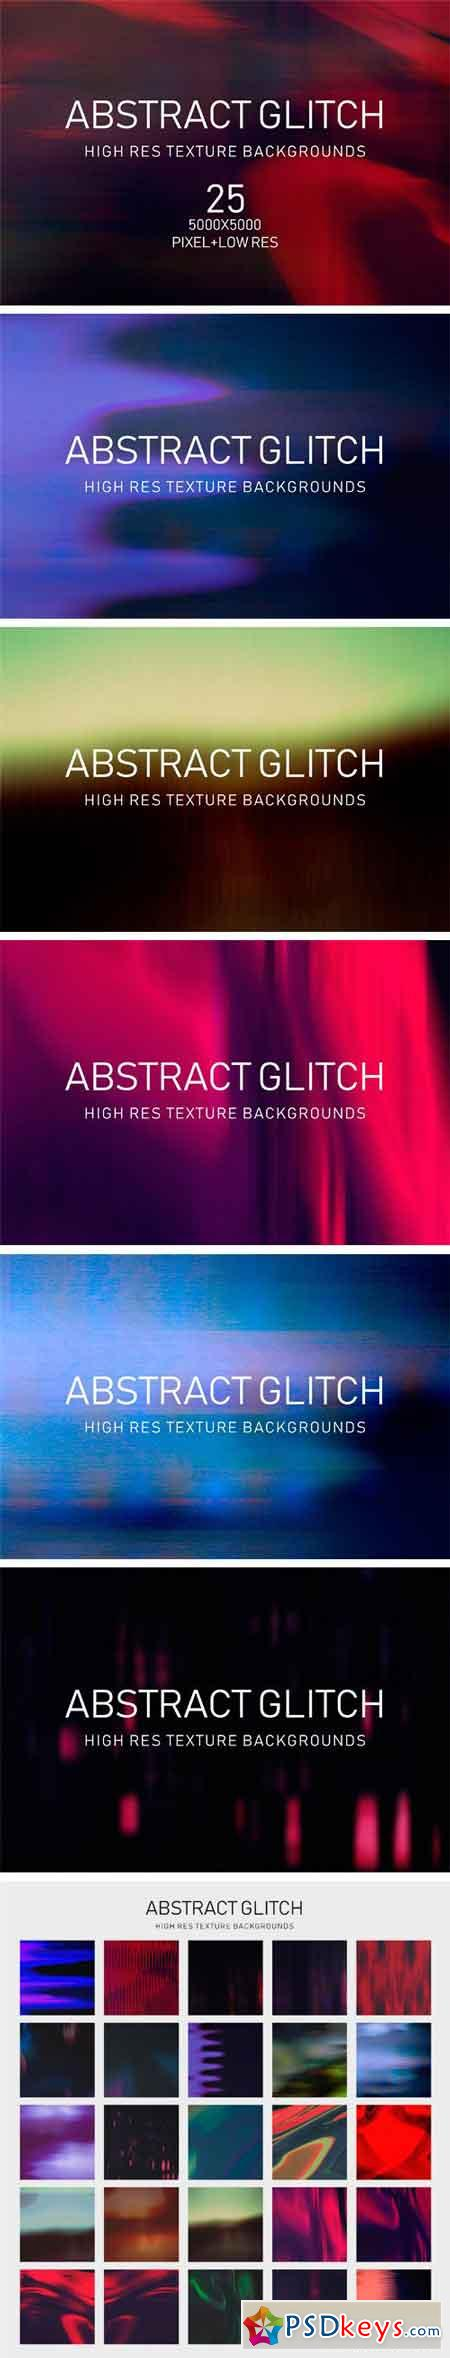 Abstract Glitch Texture Collection 2350354